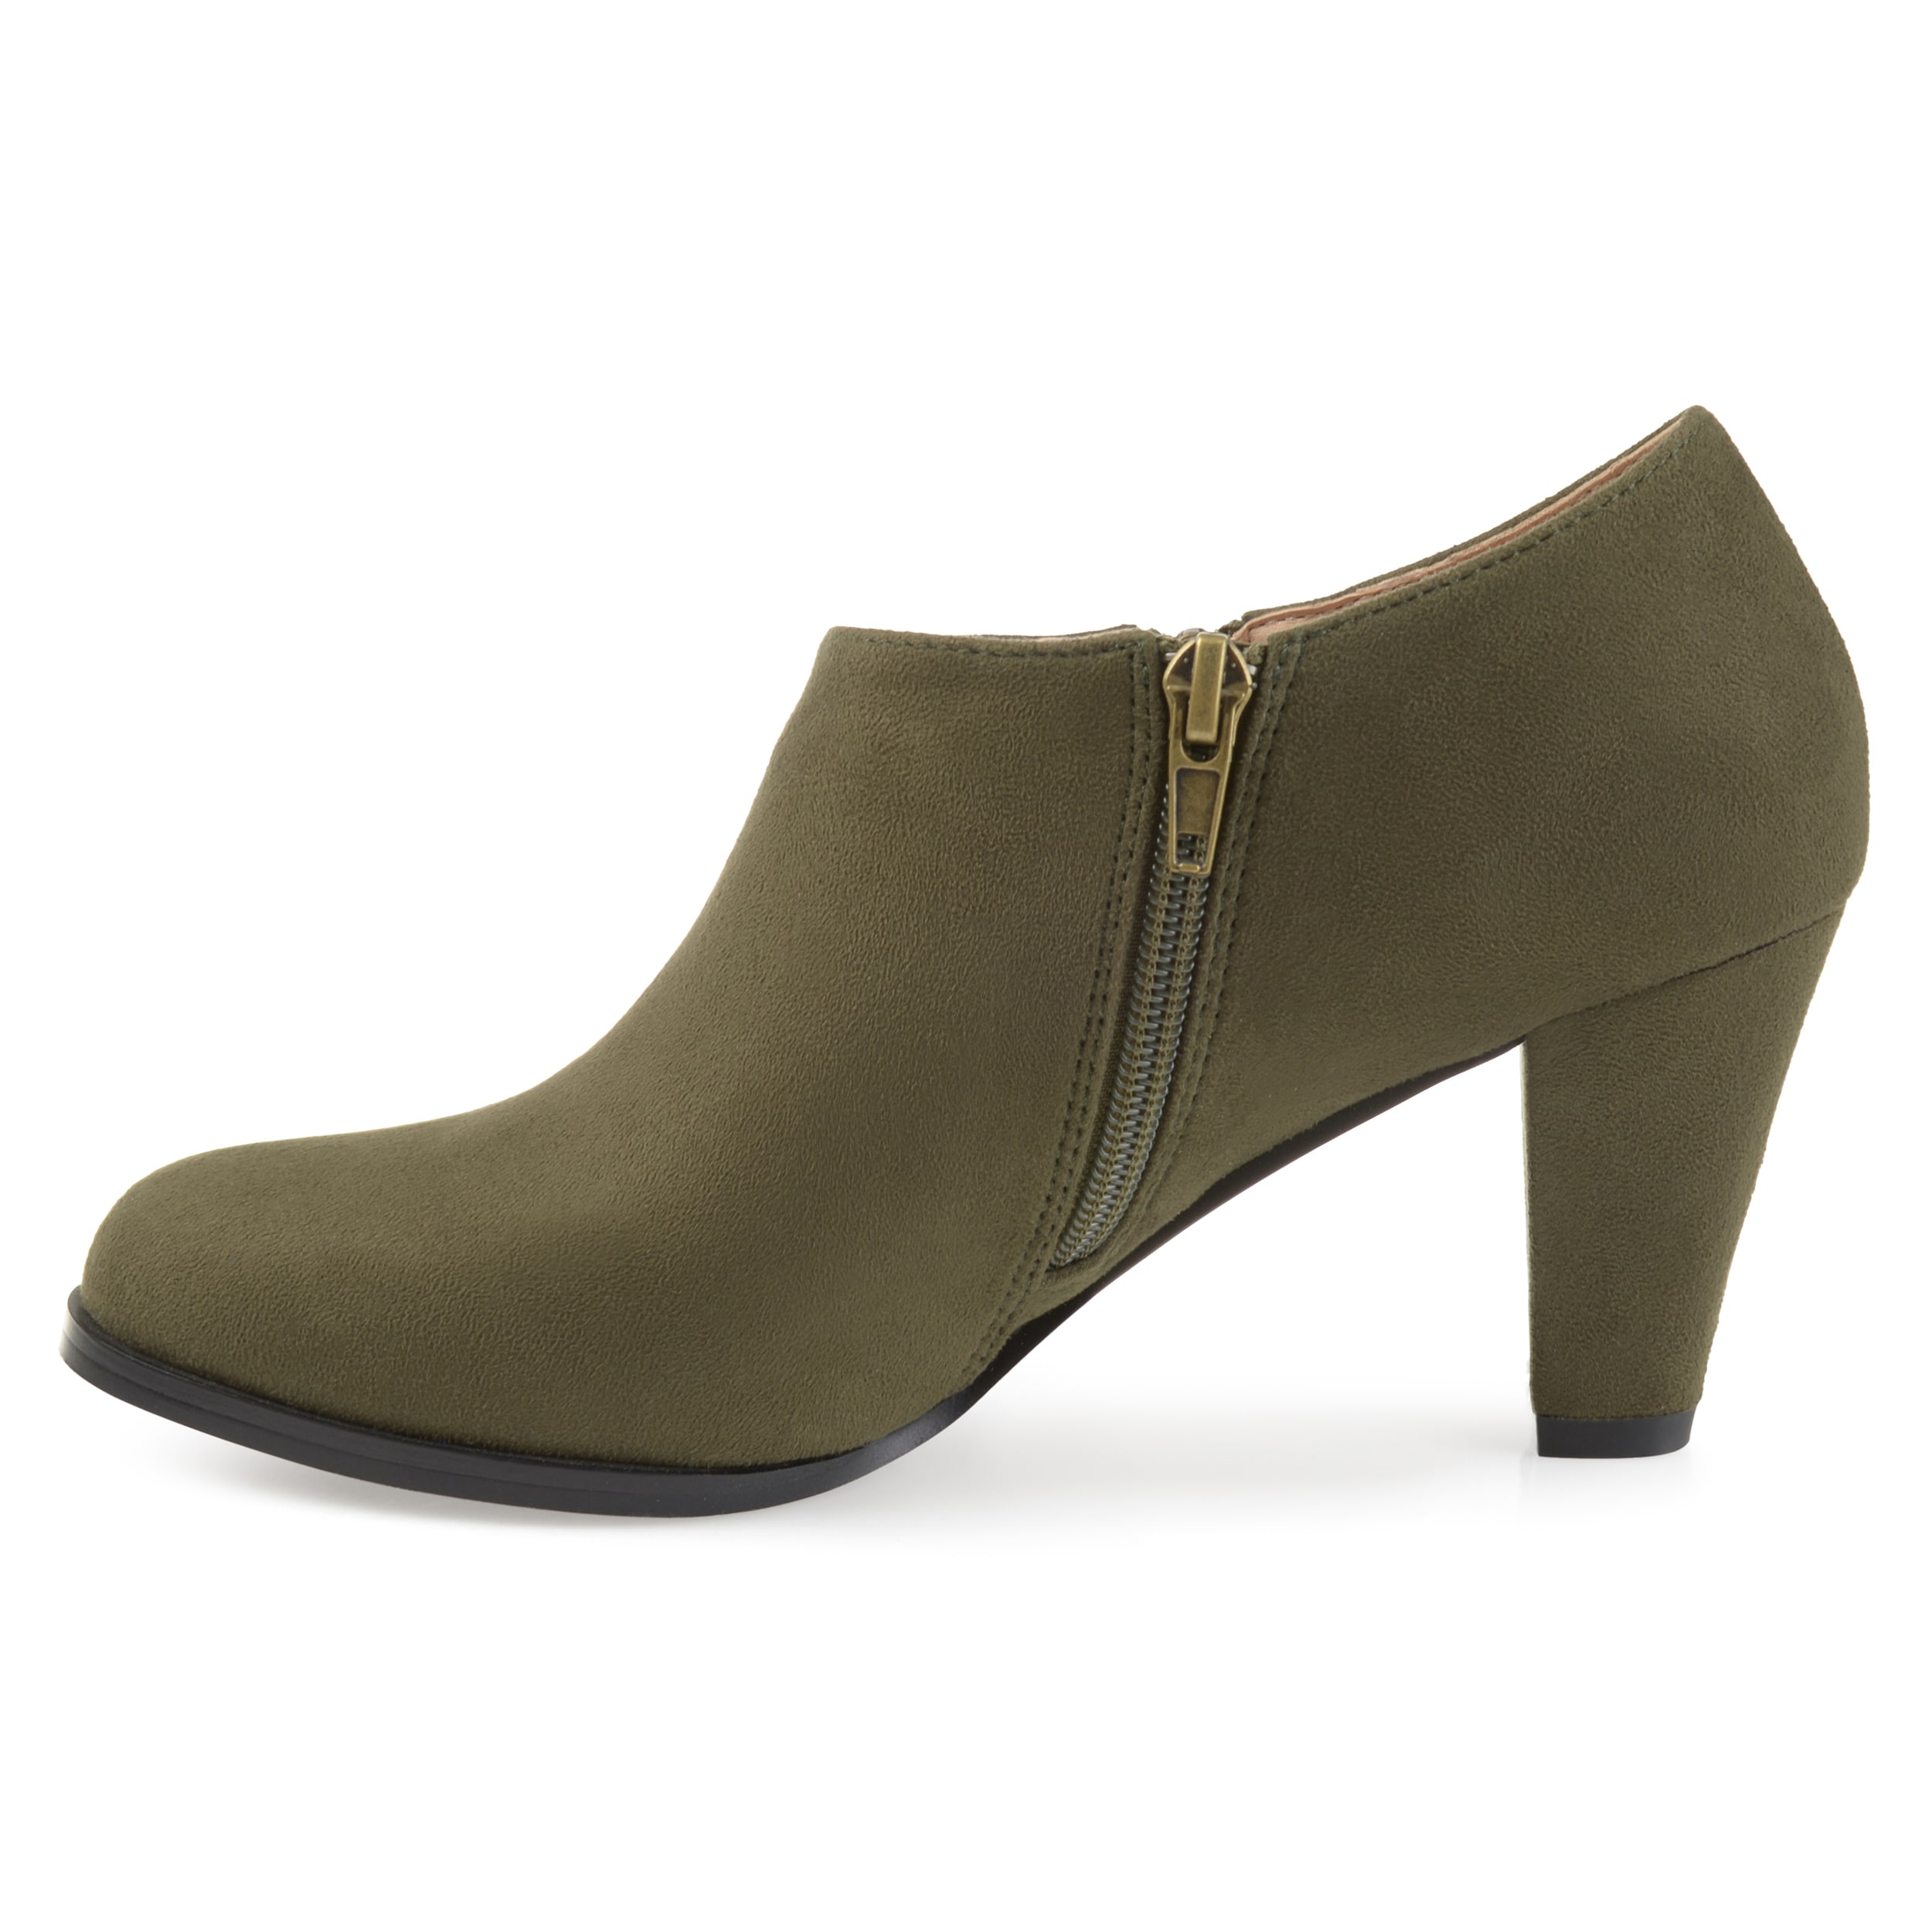 latest cheap price Journee Collection Sanzi ... Women's Ankle Boots fashion Style cheap online shop offer sale online latest collections online ZoWN6gC